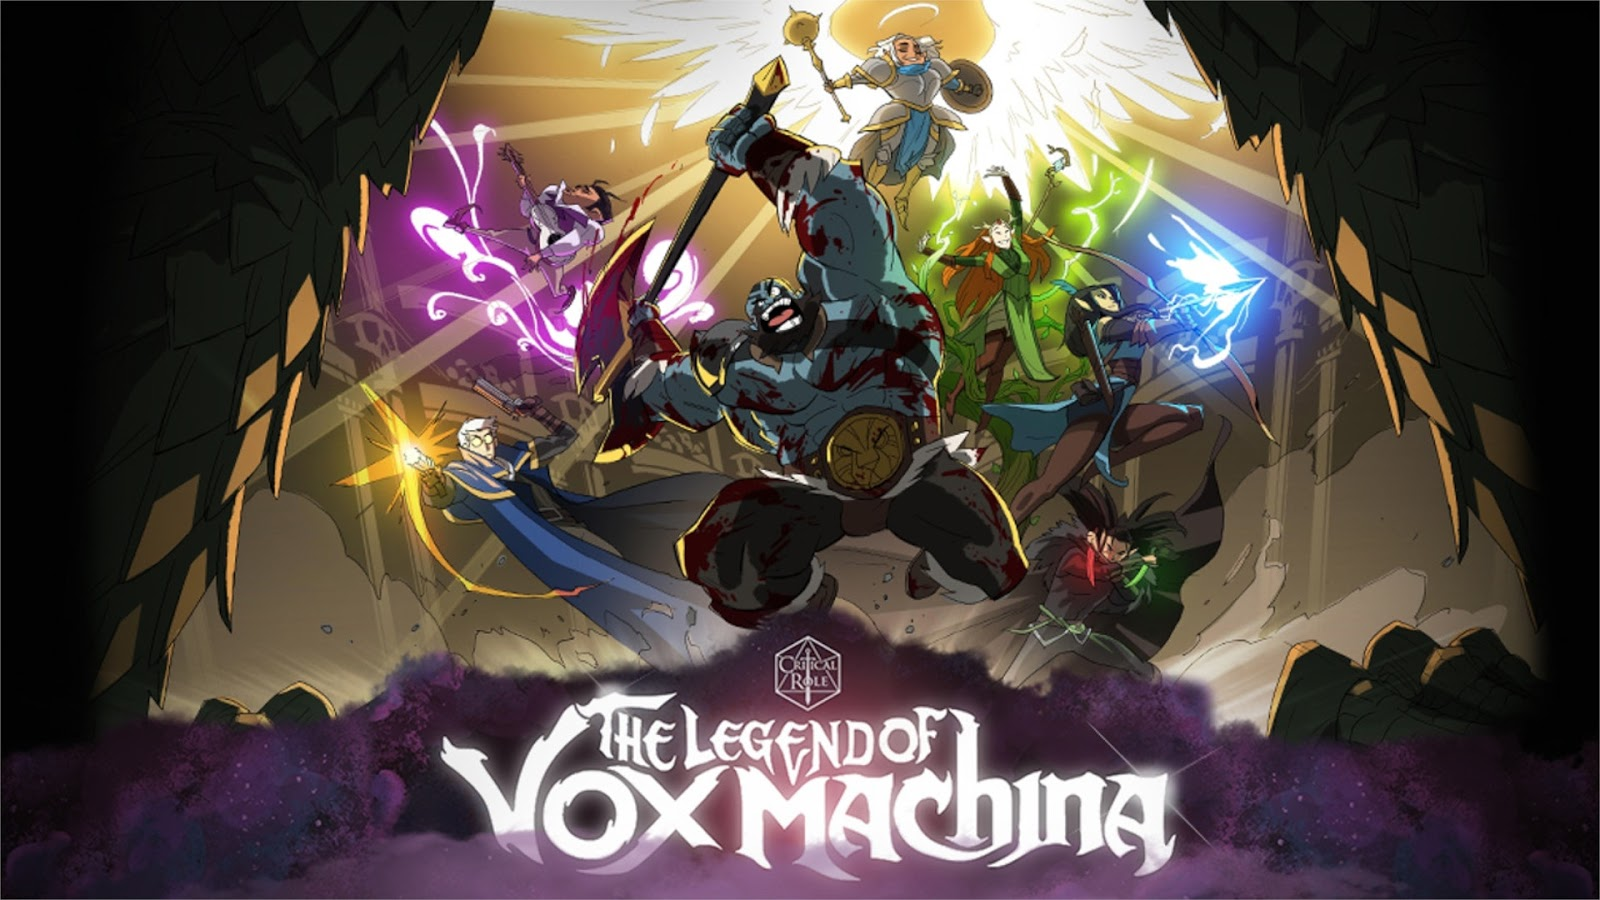 Board Game News Vox Machine take 11.3 Million